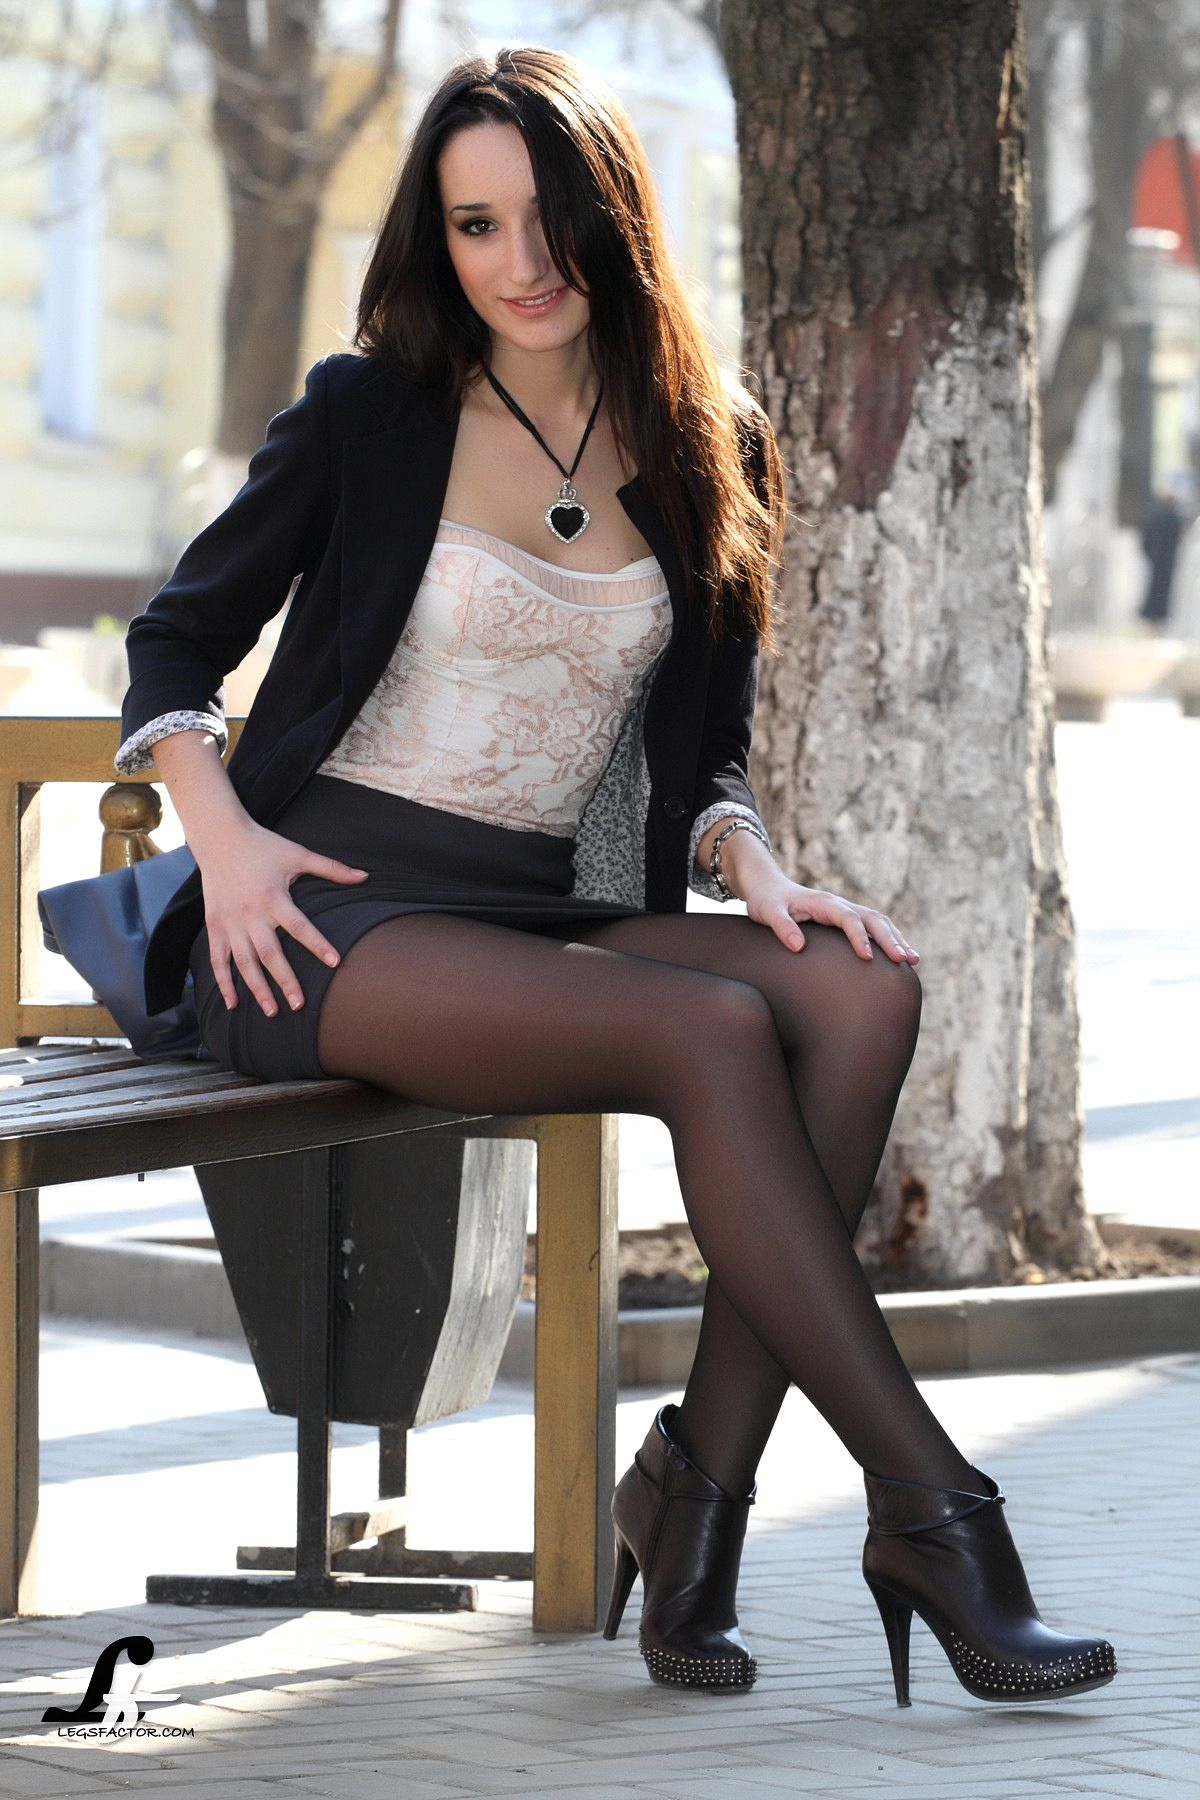 Black women in pantyhose Pics Of Girls In Skirt And Black Pantyhose Black Pantyhose Fashion Fashion Clothes Women